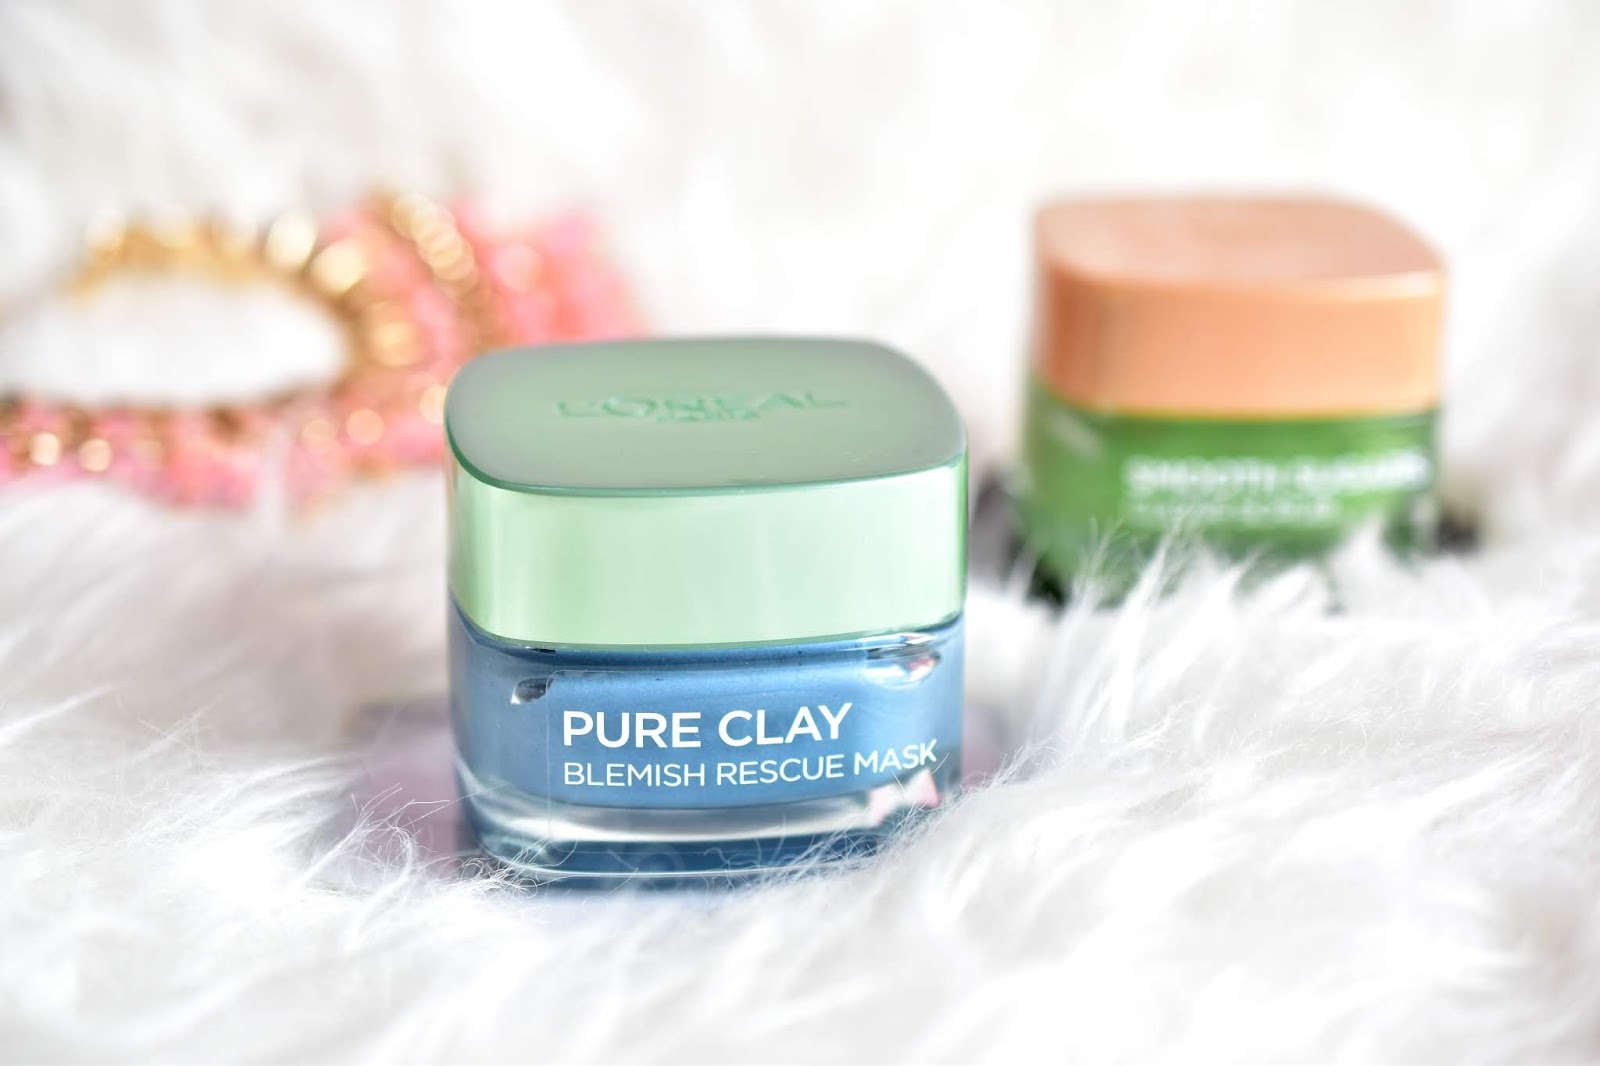 LOREAL Pure Clay Blemish Rescue Mask